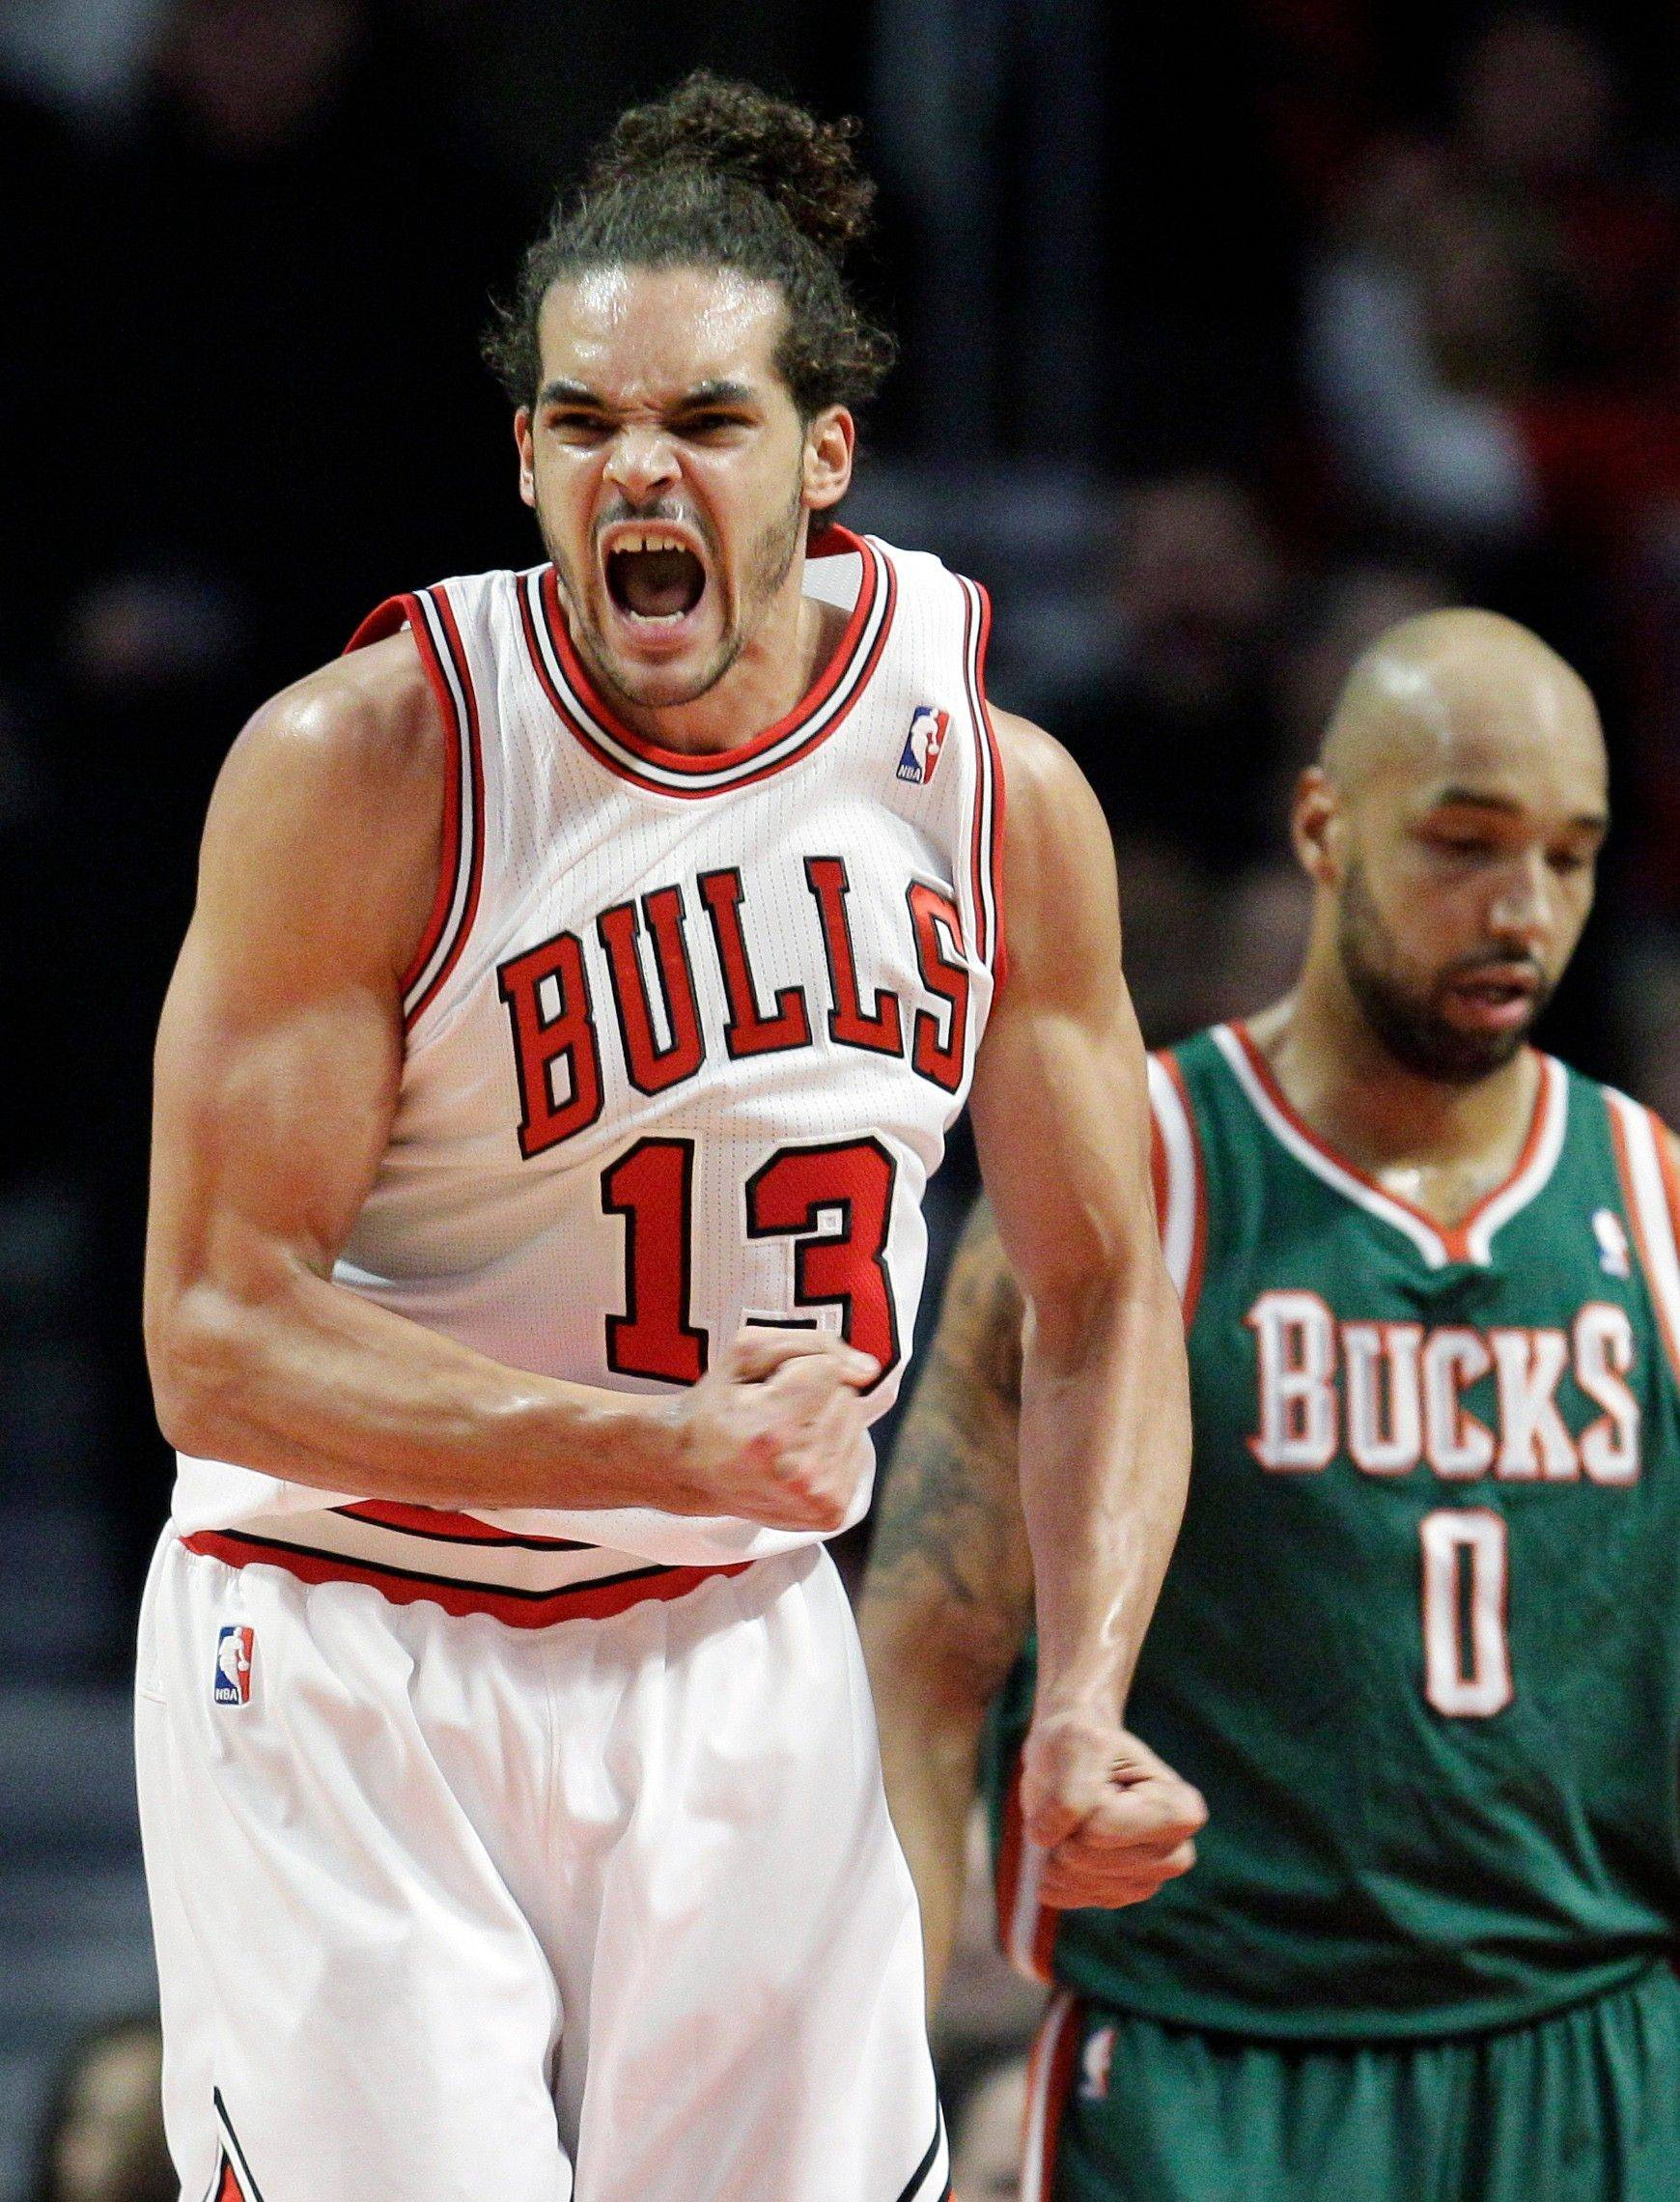 Bulls' Joakim Noah just needed more time to get going